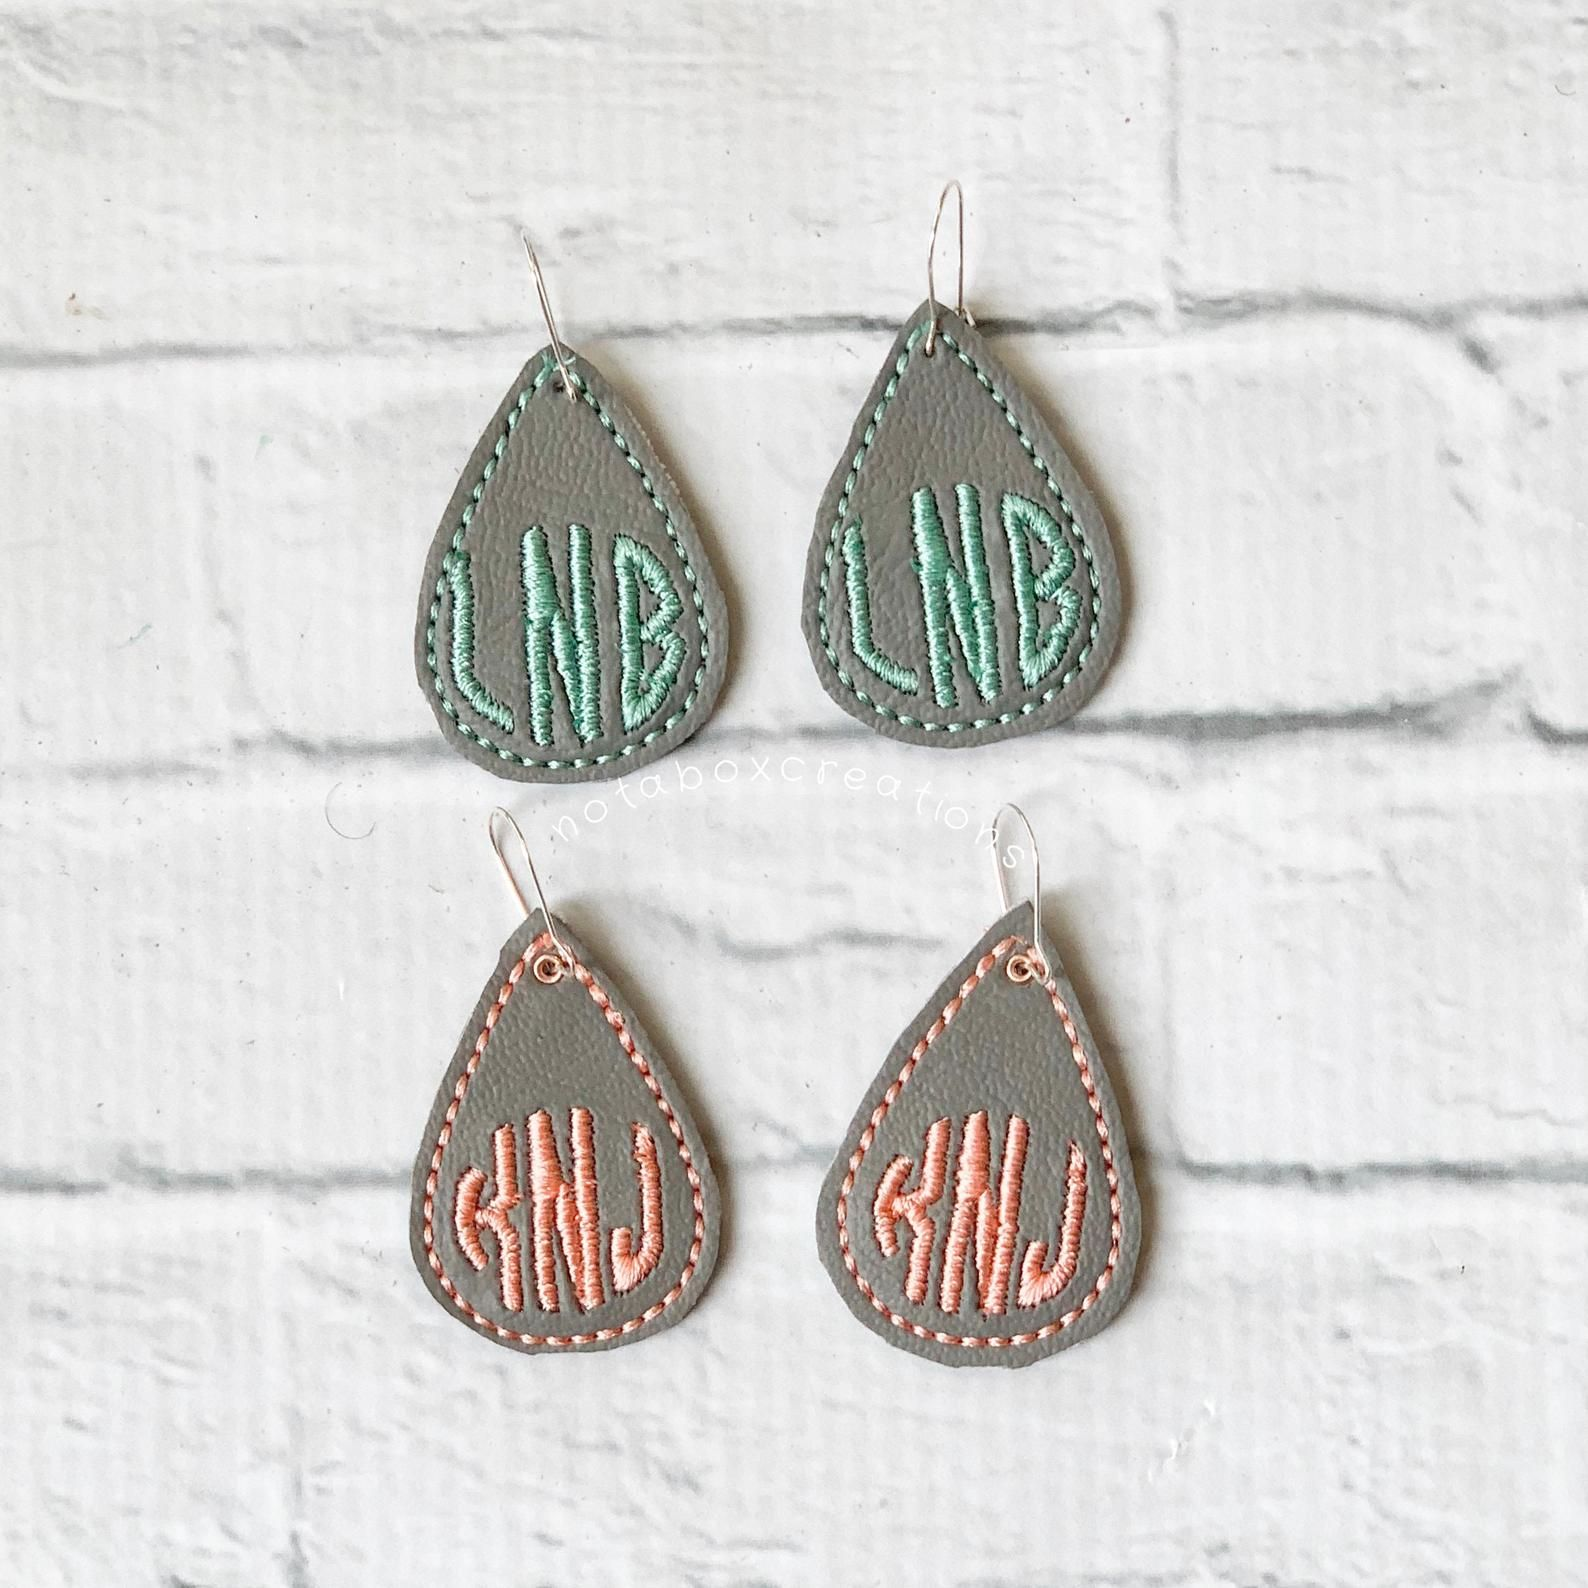 Monogrammed Teardrop Reversible Faux Leather Earring Earrings